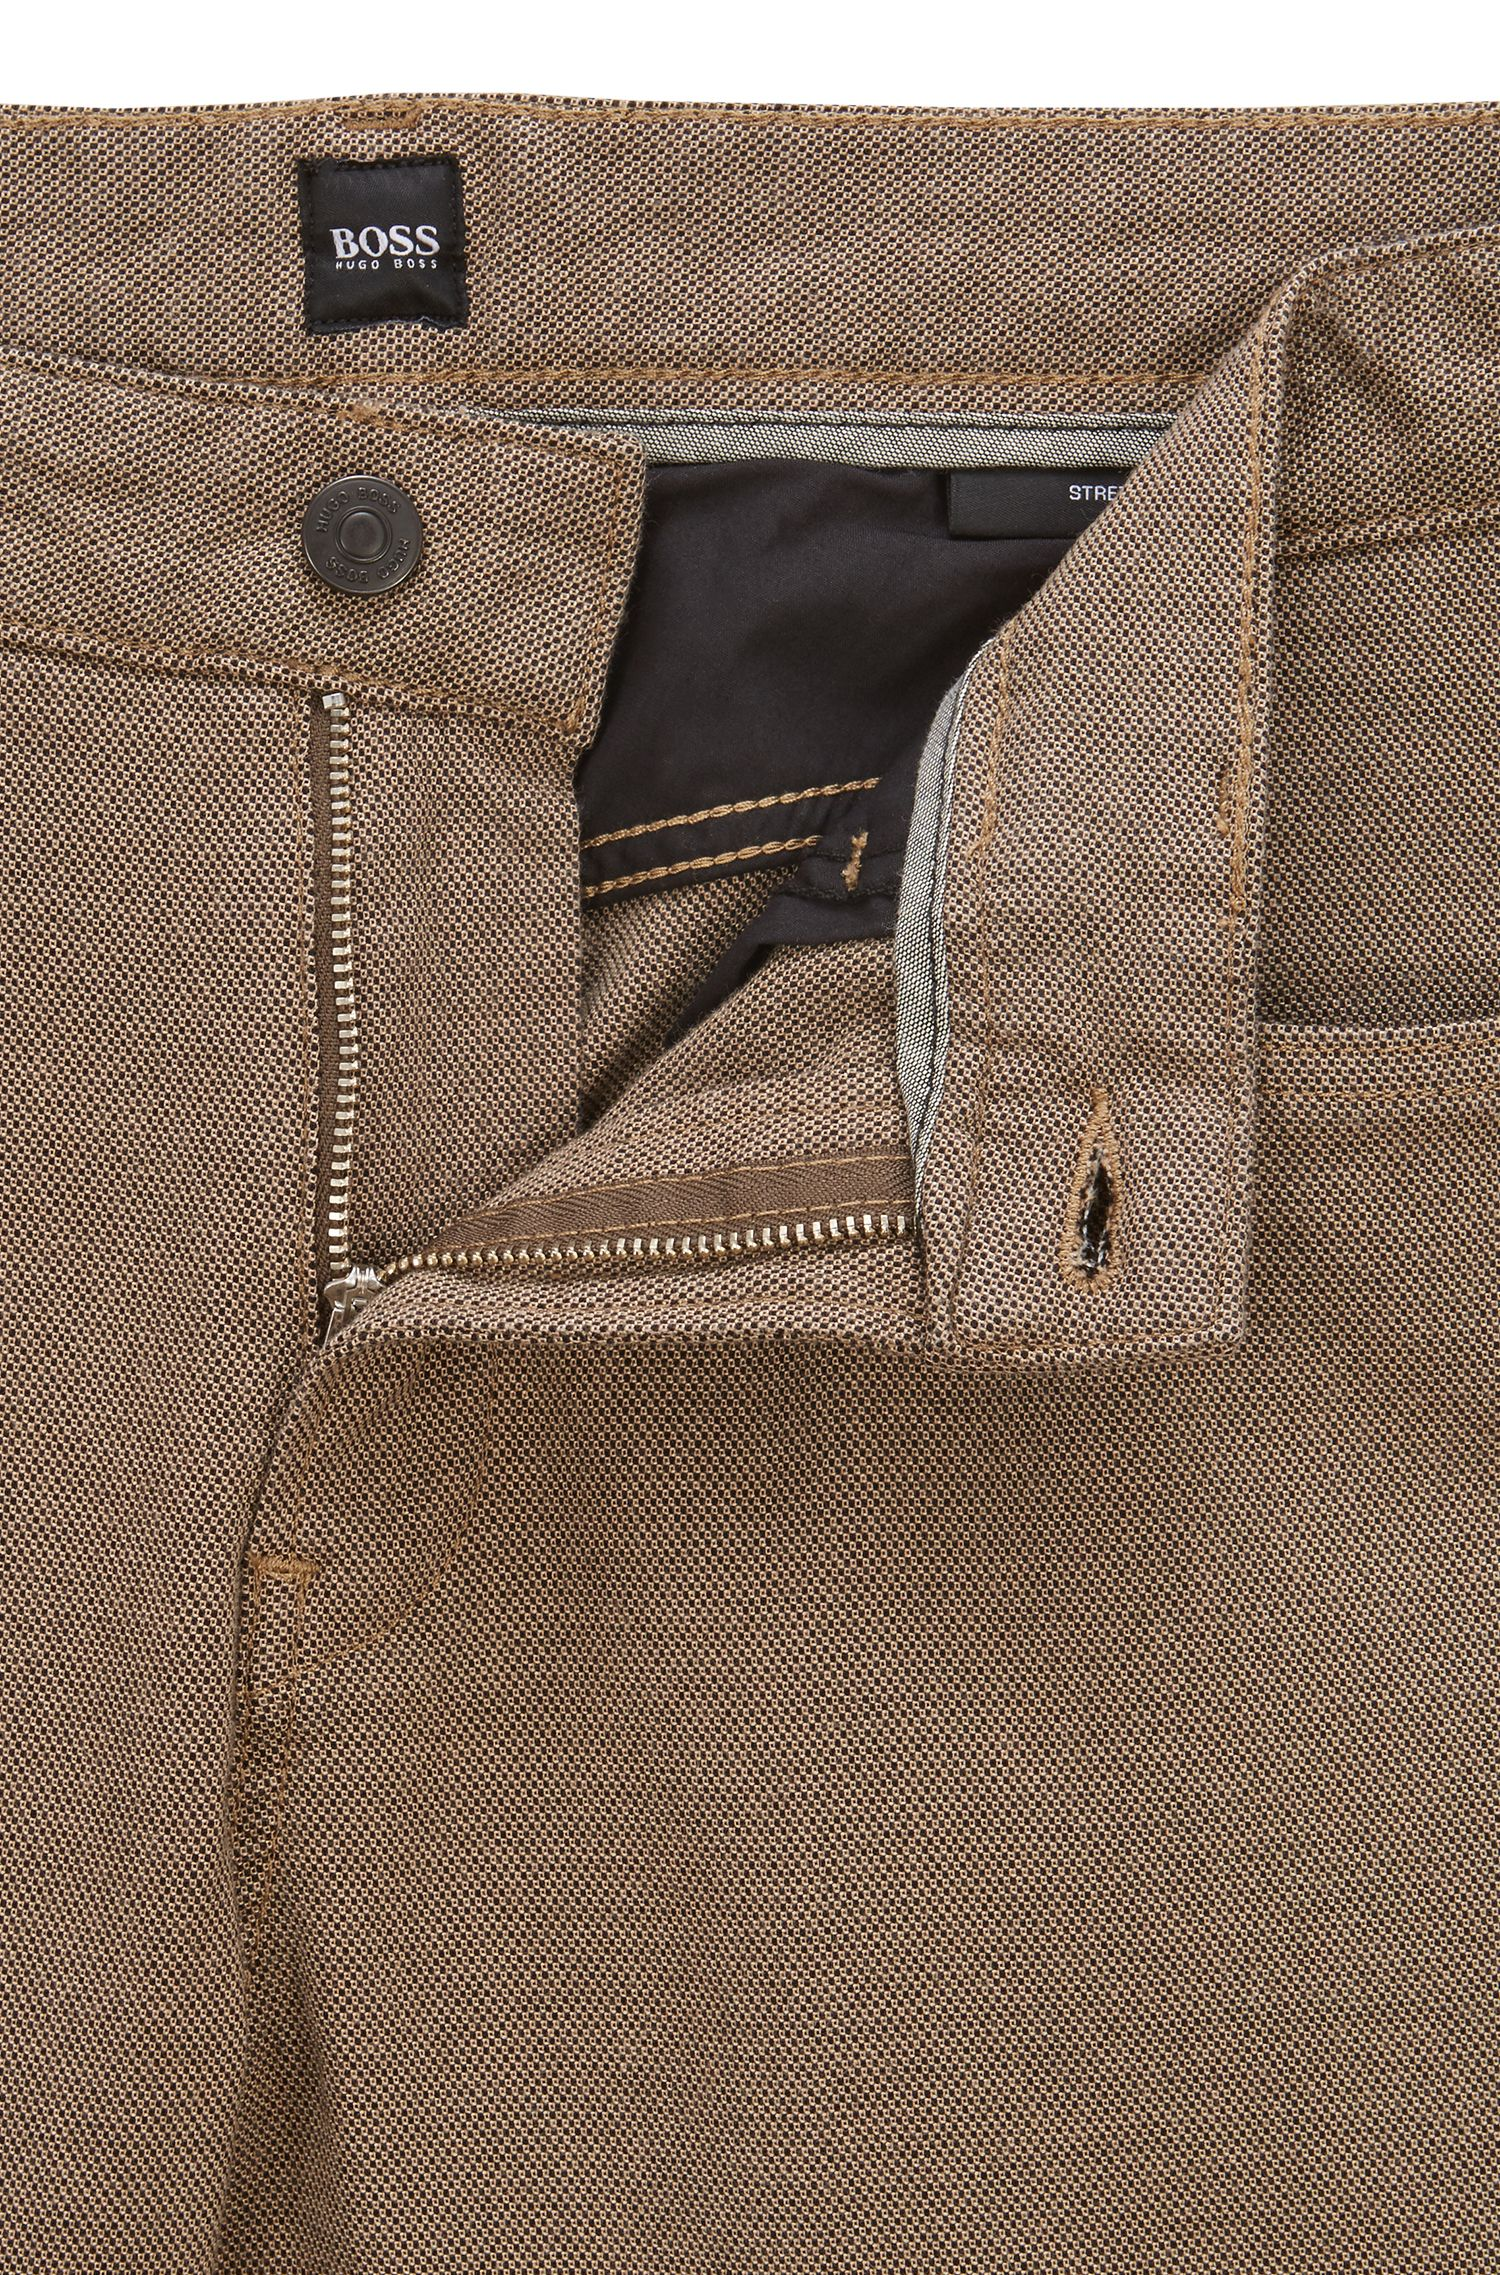 Slim-fit jeans in two-colored micro-structured denim, Beige